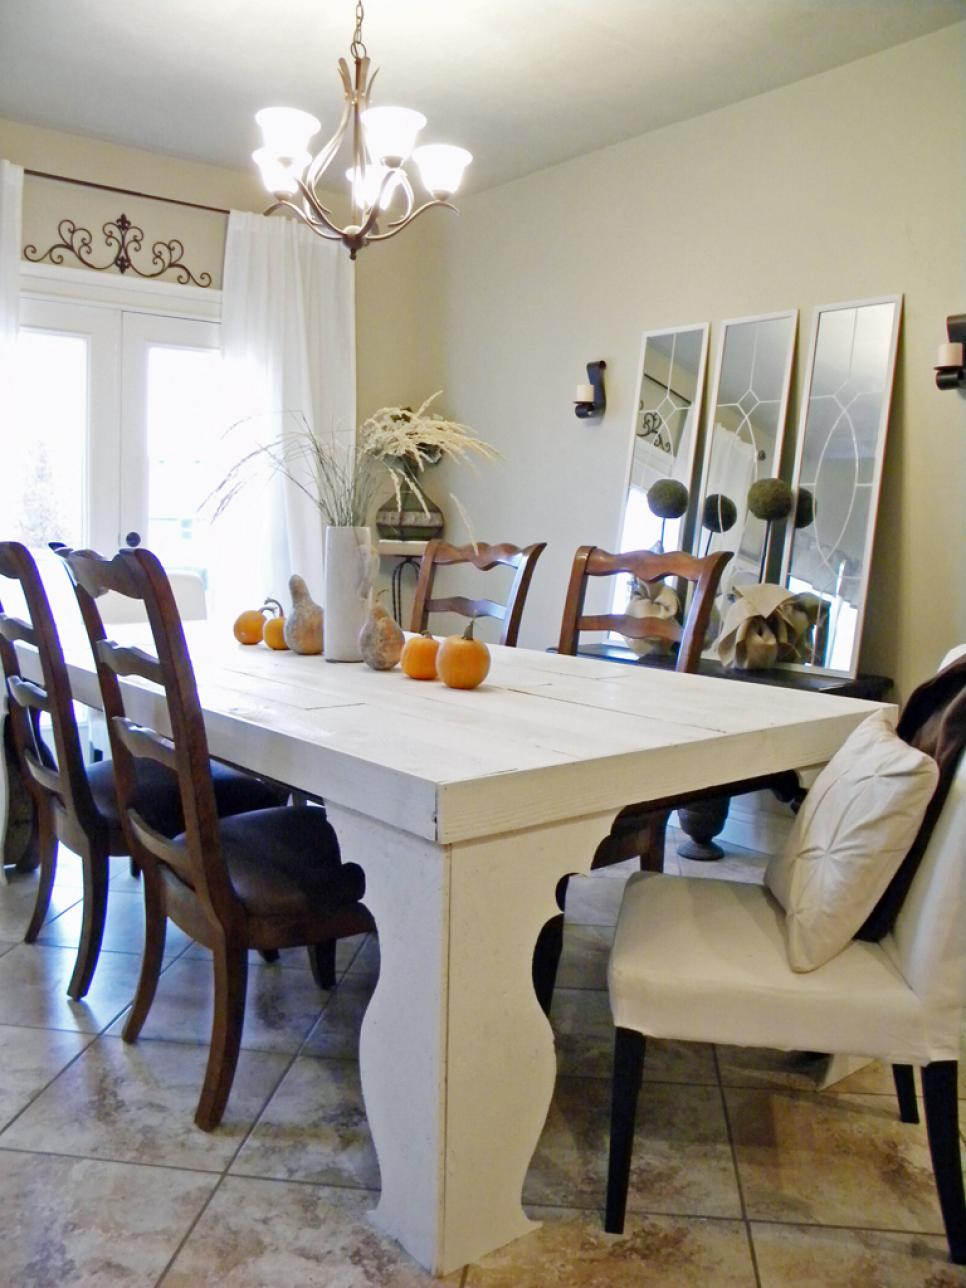 12 ways to add harvest decor to your home hgtv for Dining room 101 heswall